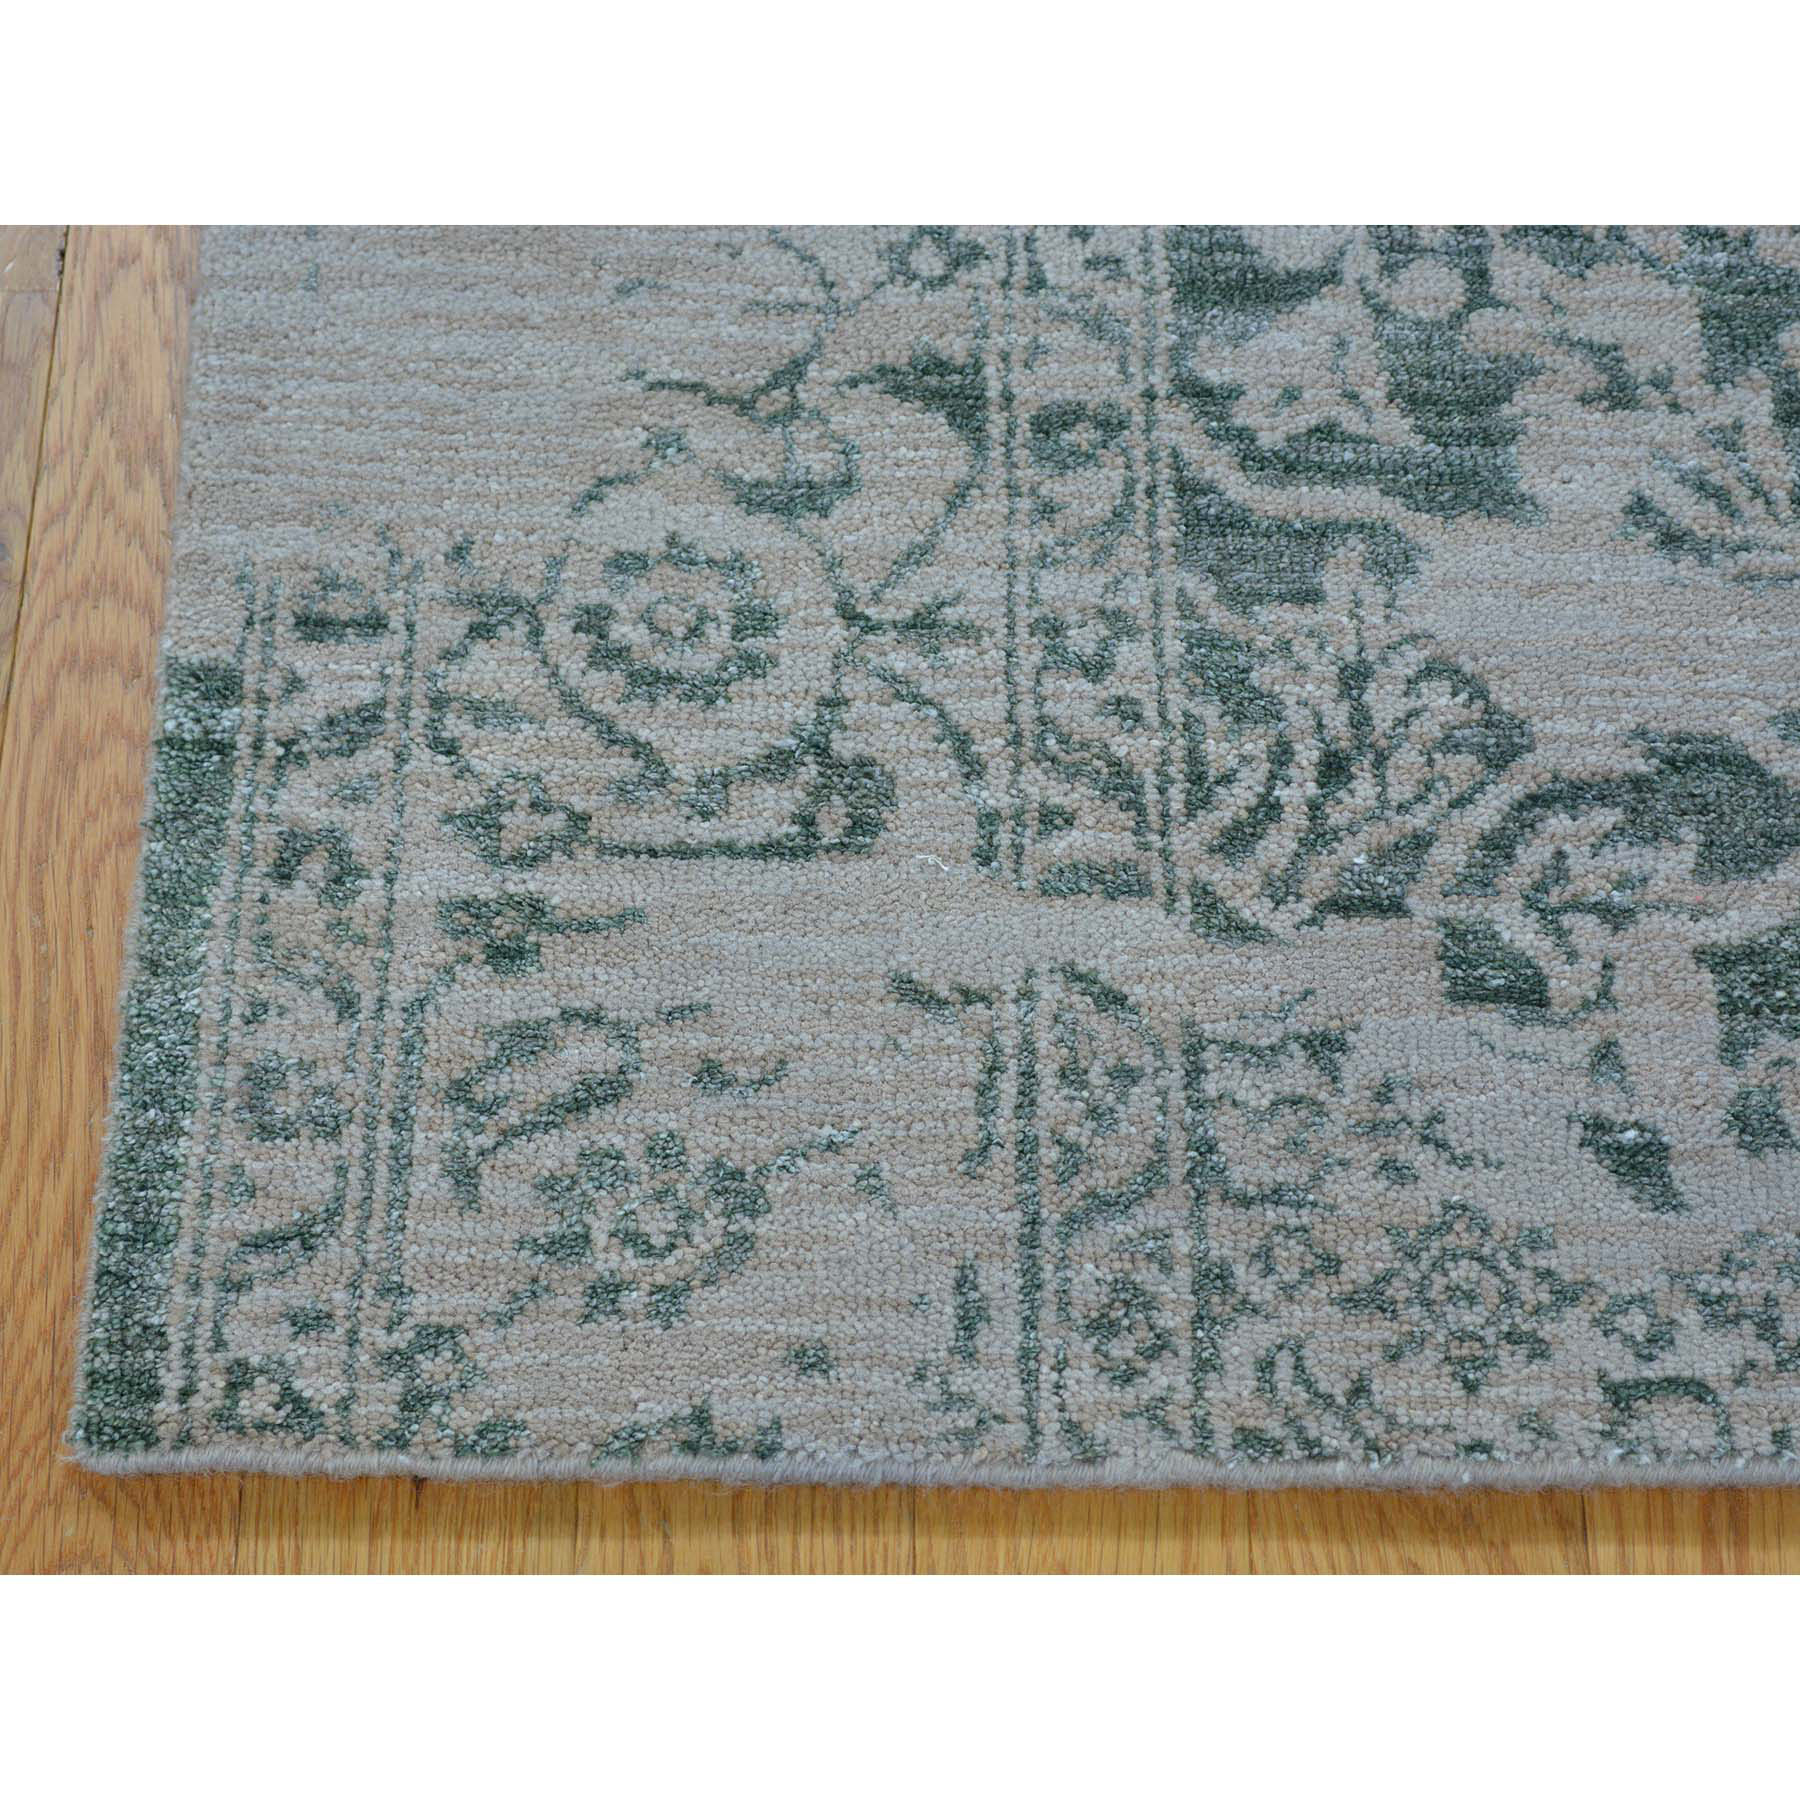 2- x 3- Wool and Silk Broken Design Heriz Handmade Sample Oriental Rug